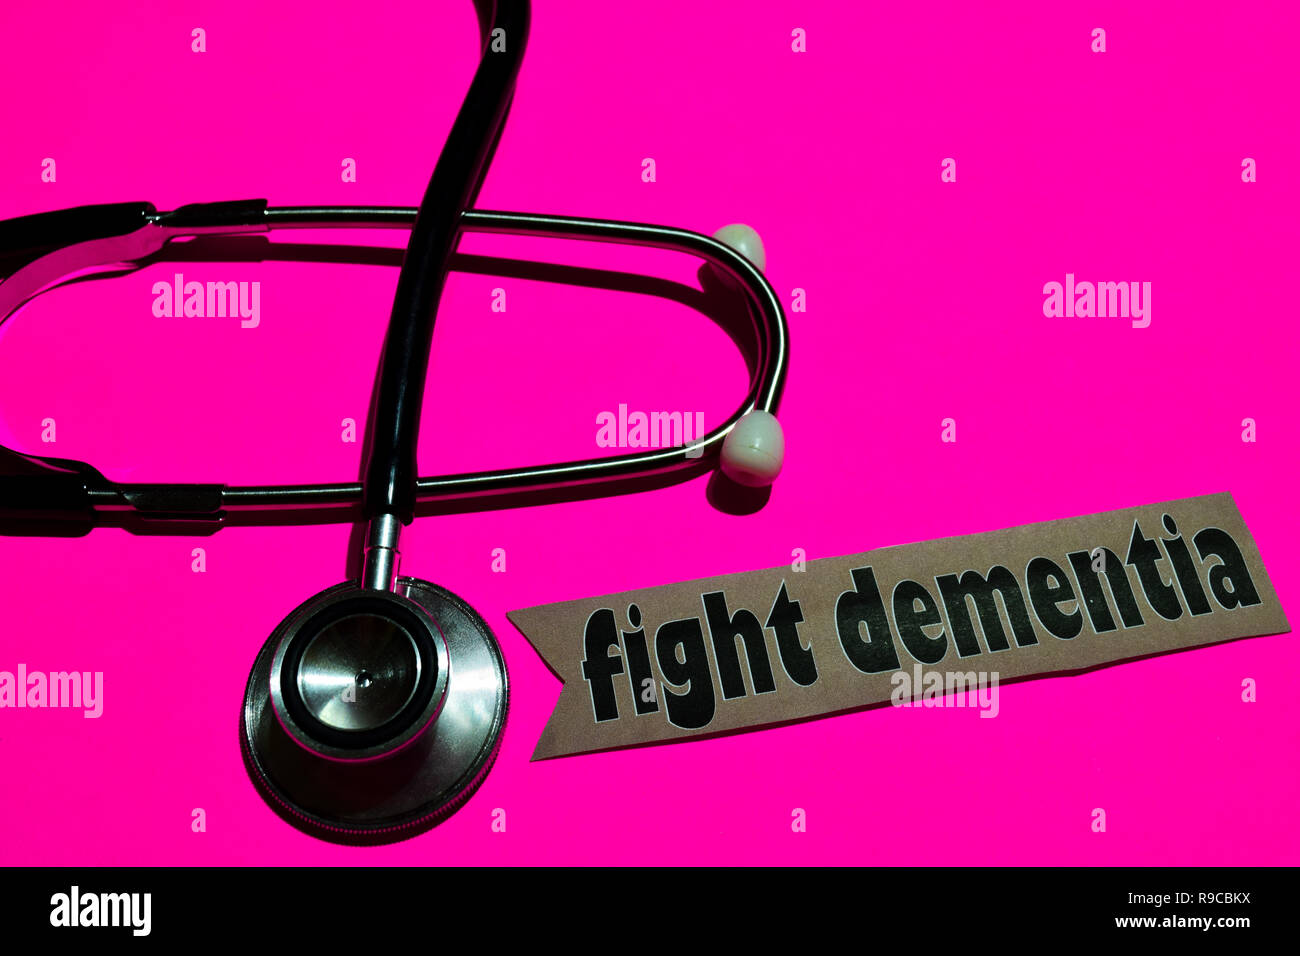 Fight dementia on the paper with healthcare concept Inspiration. stethoscope on pink bakcground - Stock Image